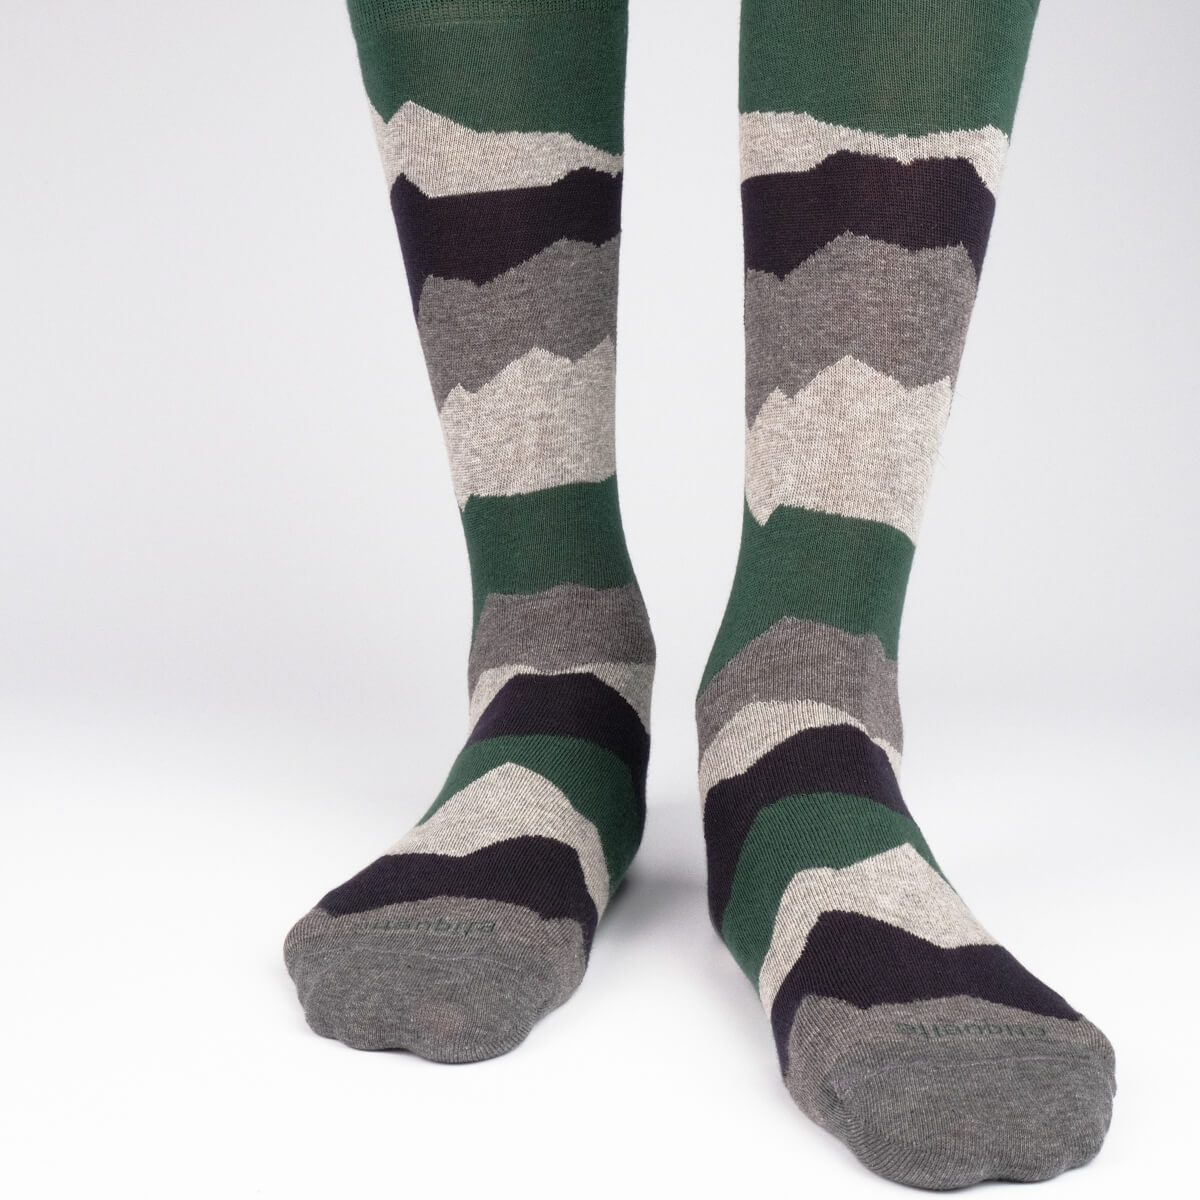 Seismic - Green - Mens Socks | Etiquette Clothiers Global Official